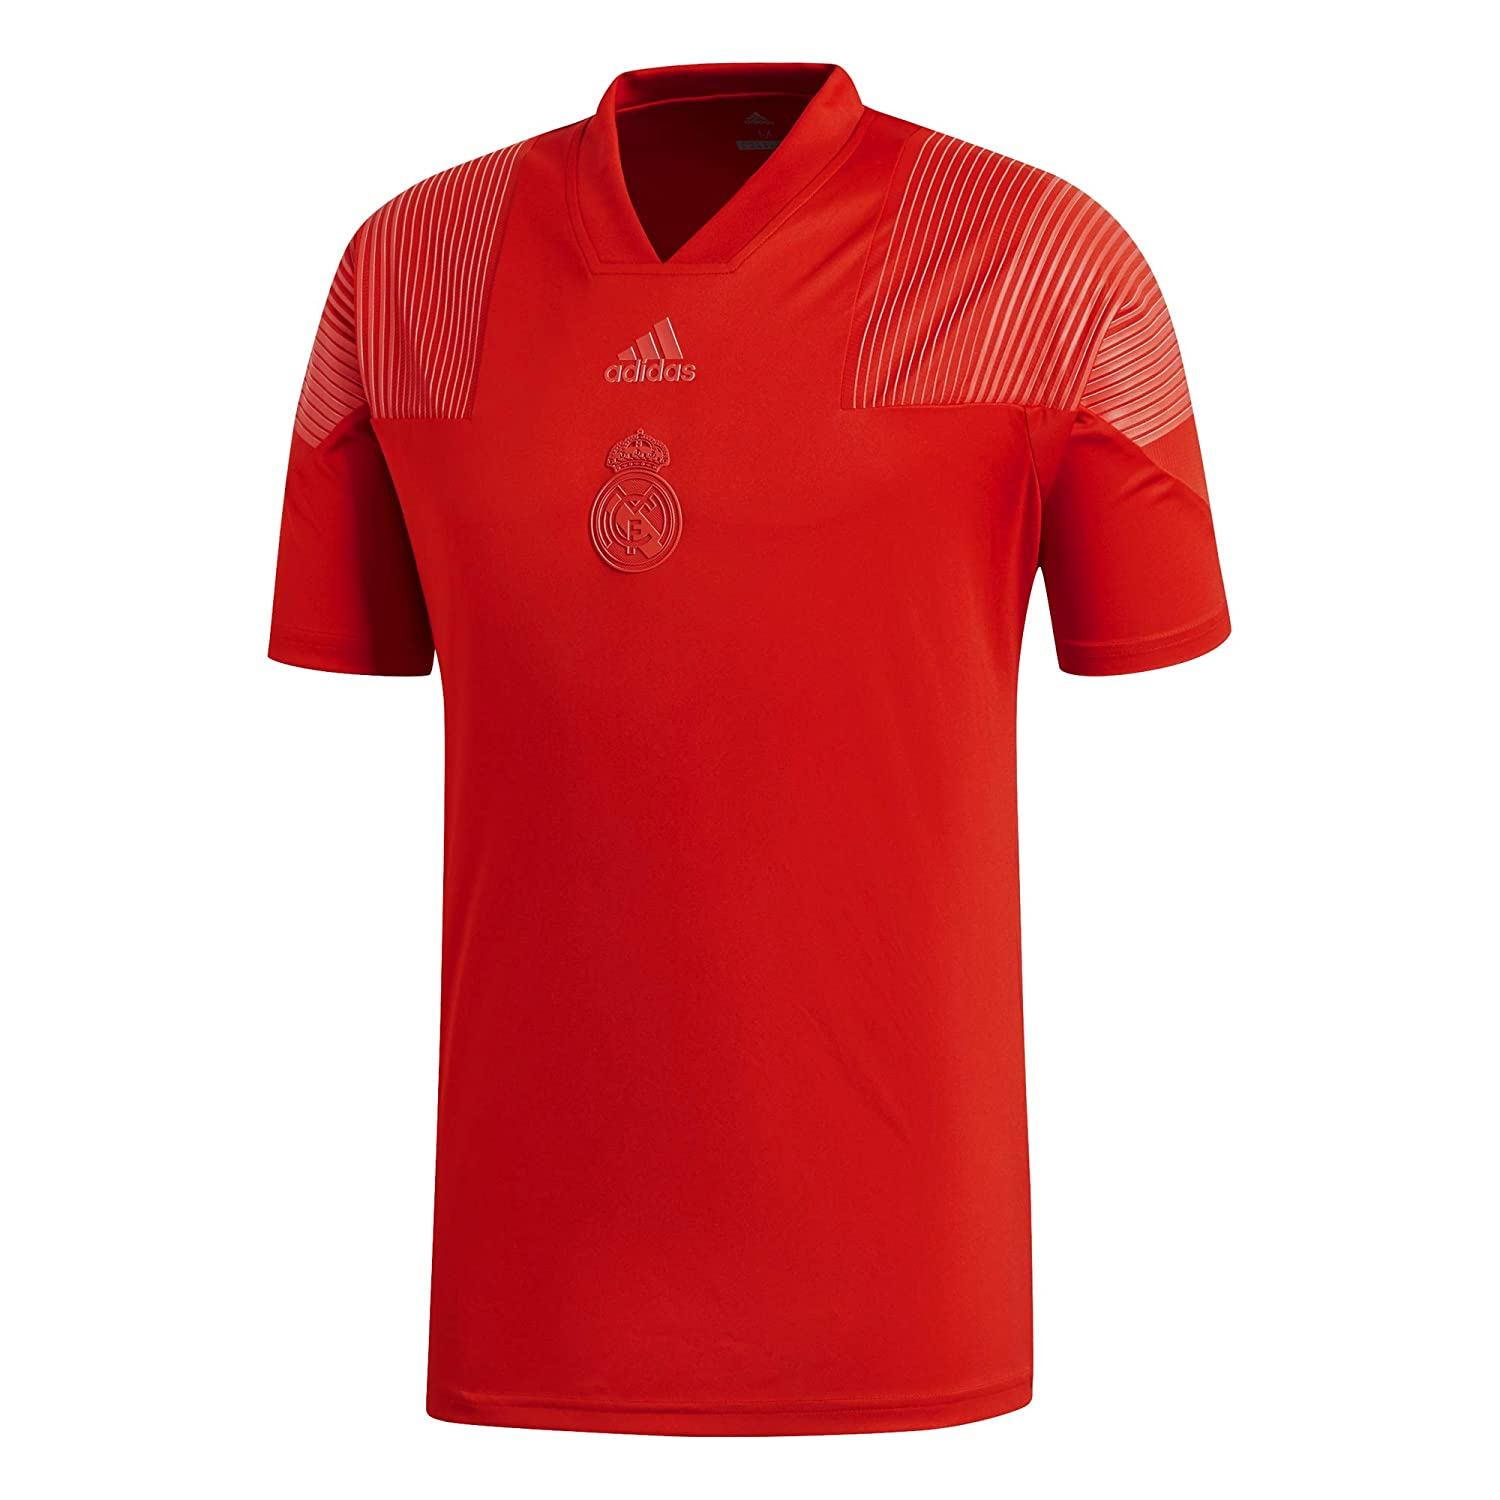 new arrival 17a61 d5328 Amazon.com : adidas 2018-2019 Real Madrid Icon Tee (Red ...